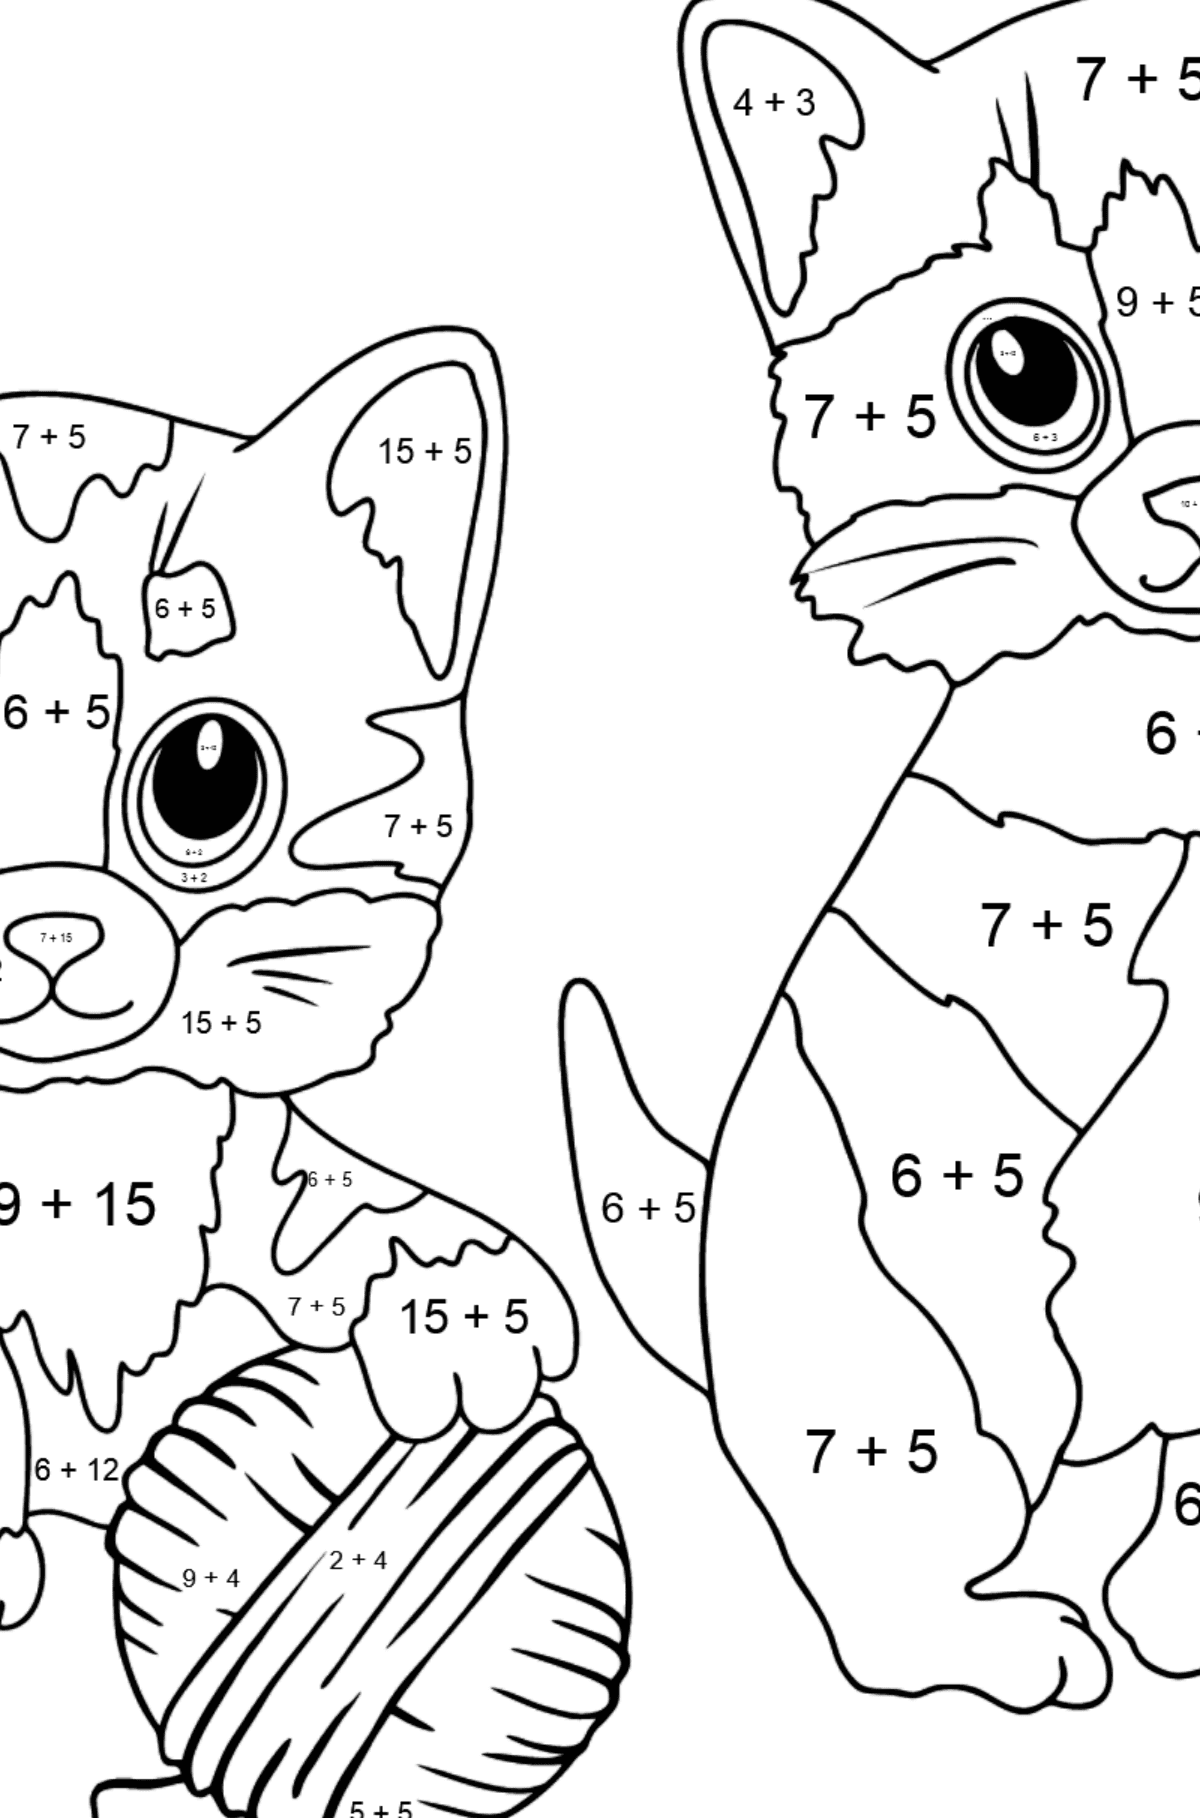 Coloring Page - Kitty Cat - Math Coloring - Addition for Kids